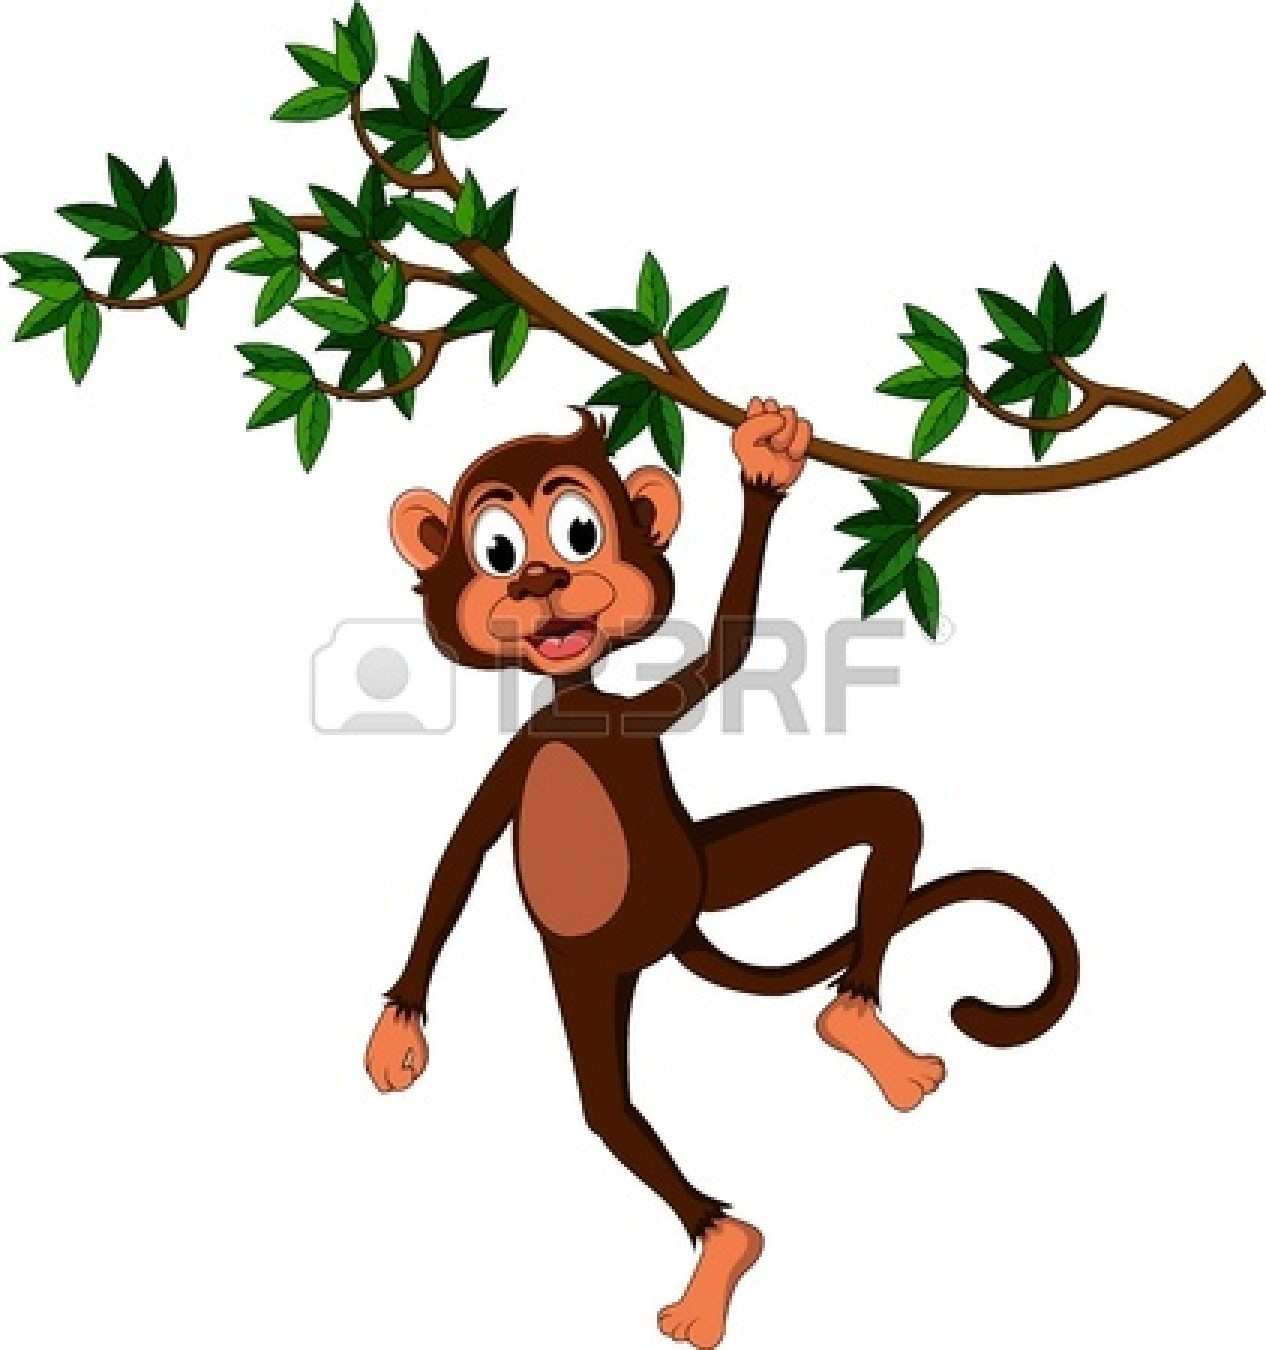 Monkey In A Tree Cartoon | Clipart Panda - Free Clipart Images